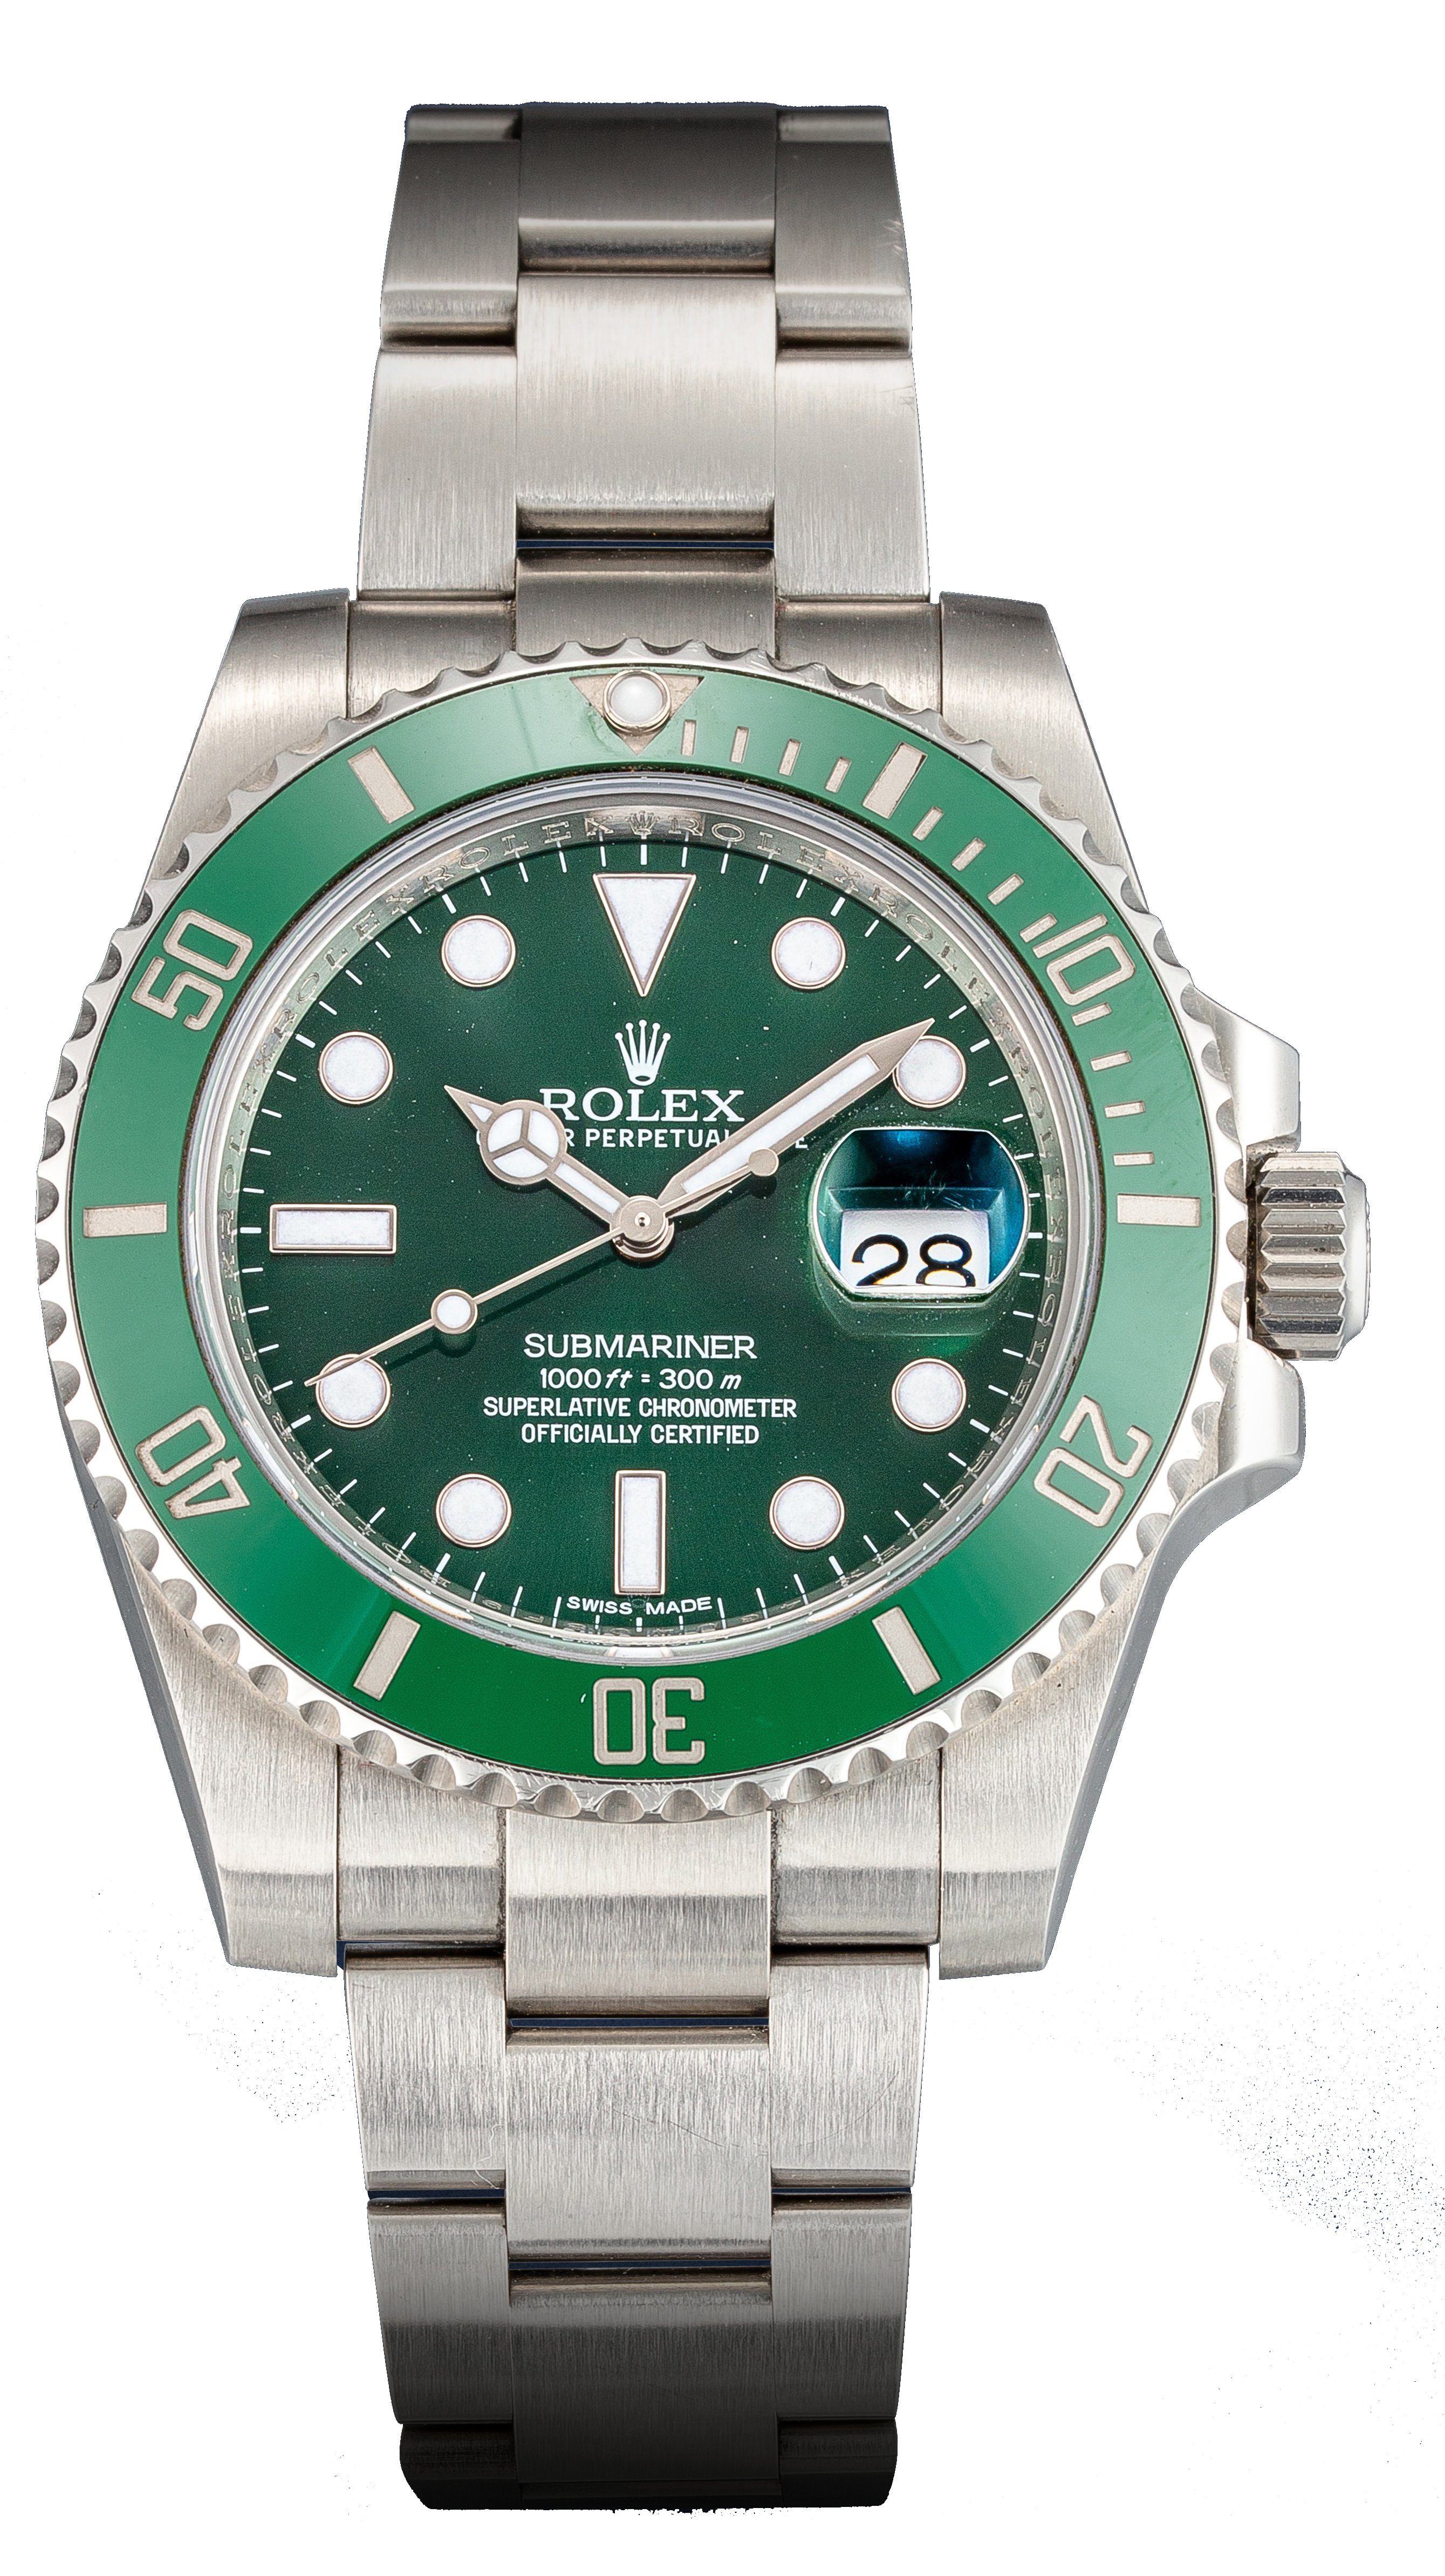 submariner-hulk-reference-116610lv-a-stainless-steel-wristwatch-with-date-and-bracelet-circa-2015-79e5